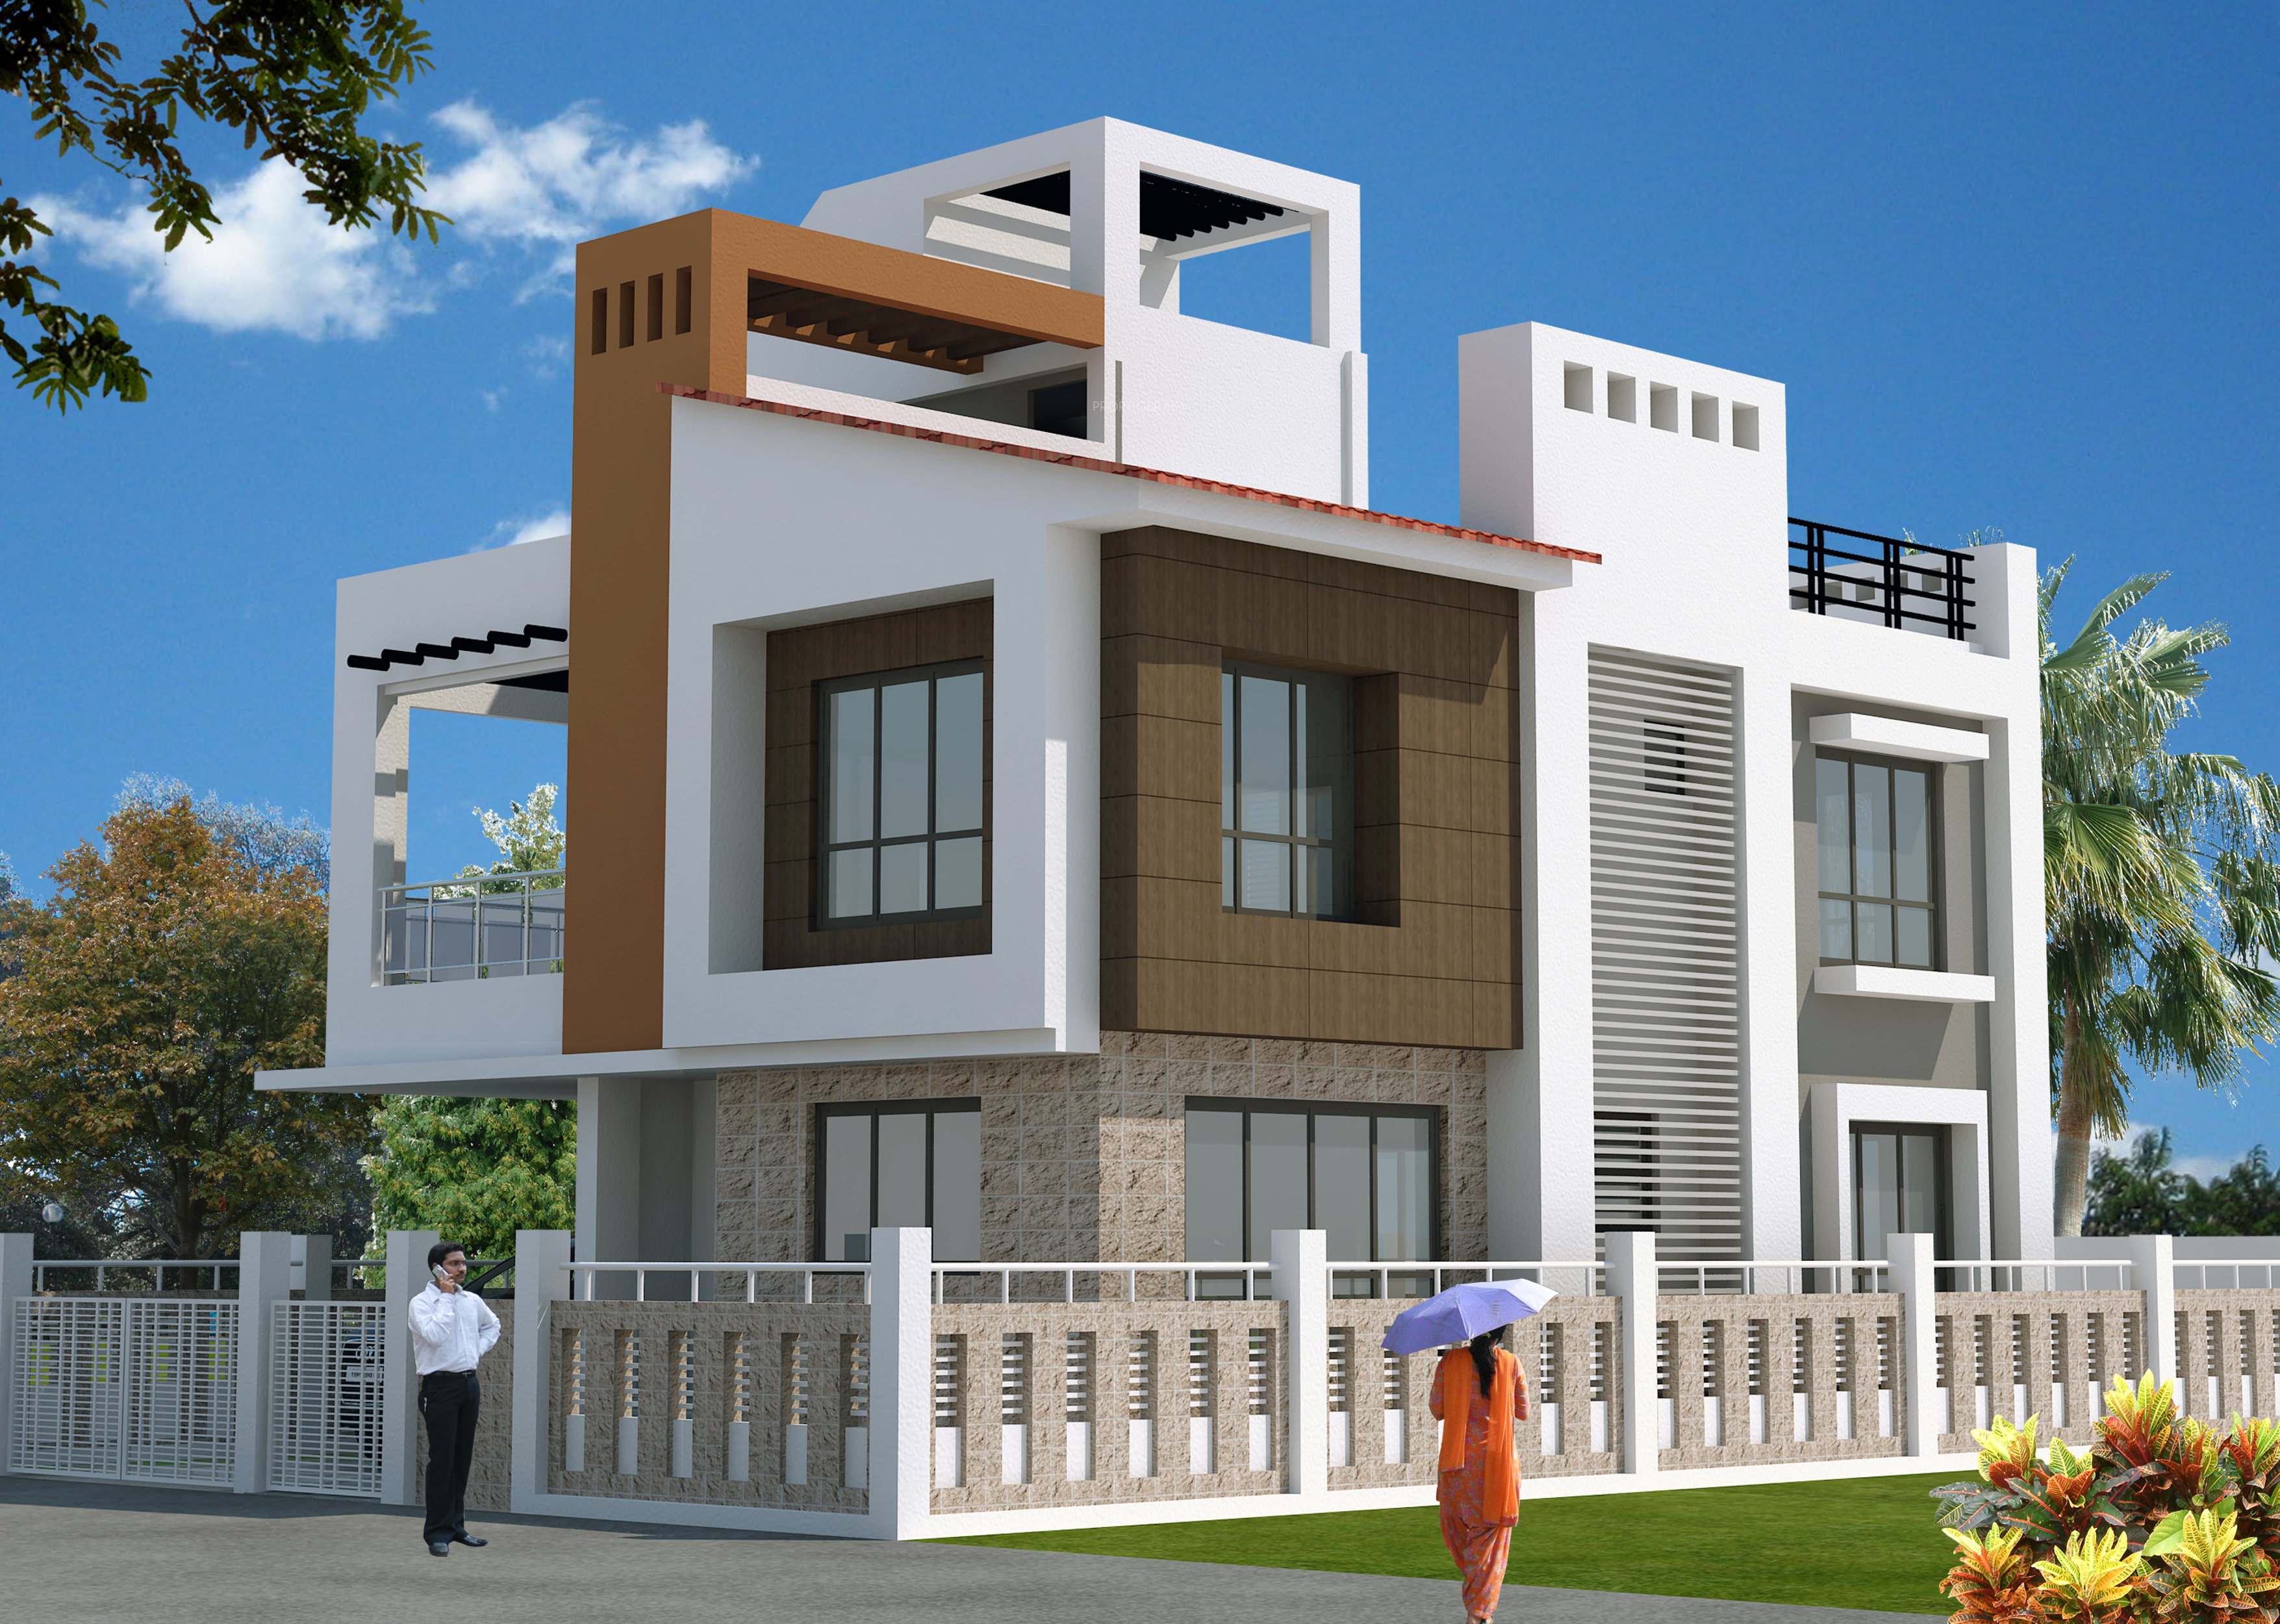 1265 Sq Ft 3 BHK 3T Villa For Sale In Bloomsbury Infrastructure Convicity Villas New Town Kolkata